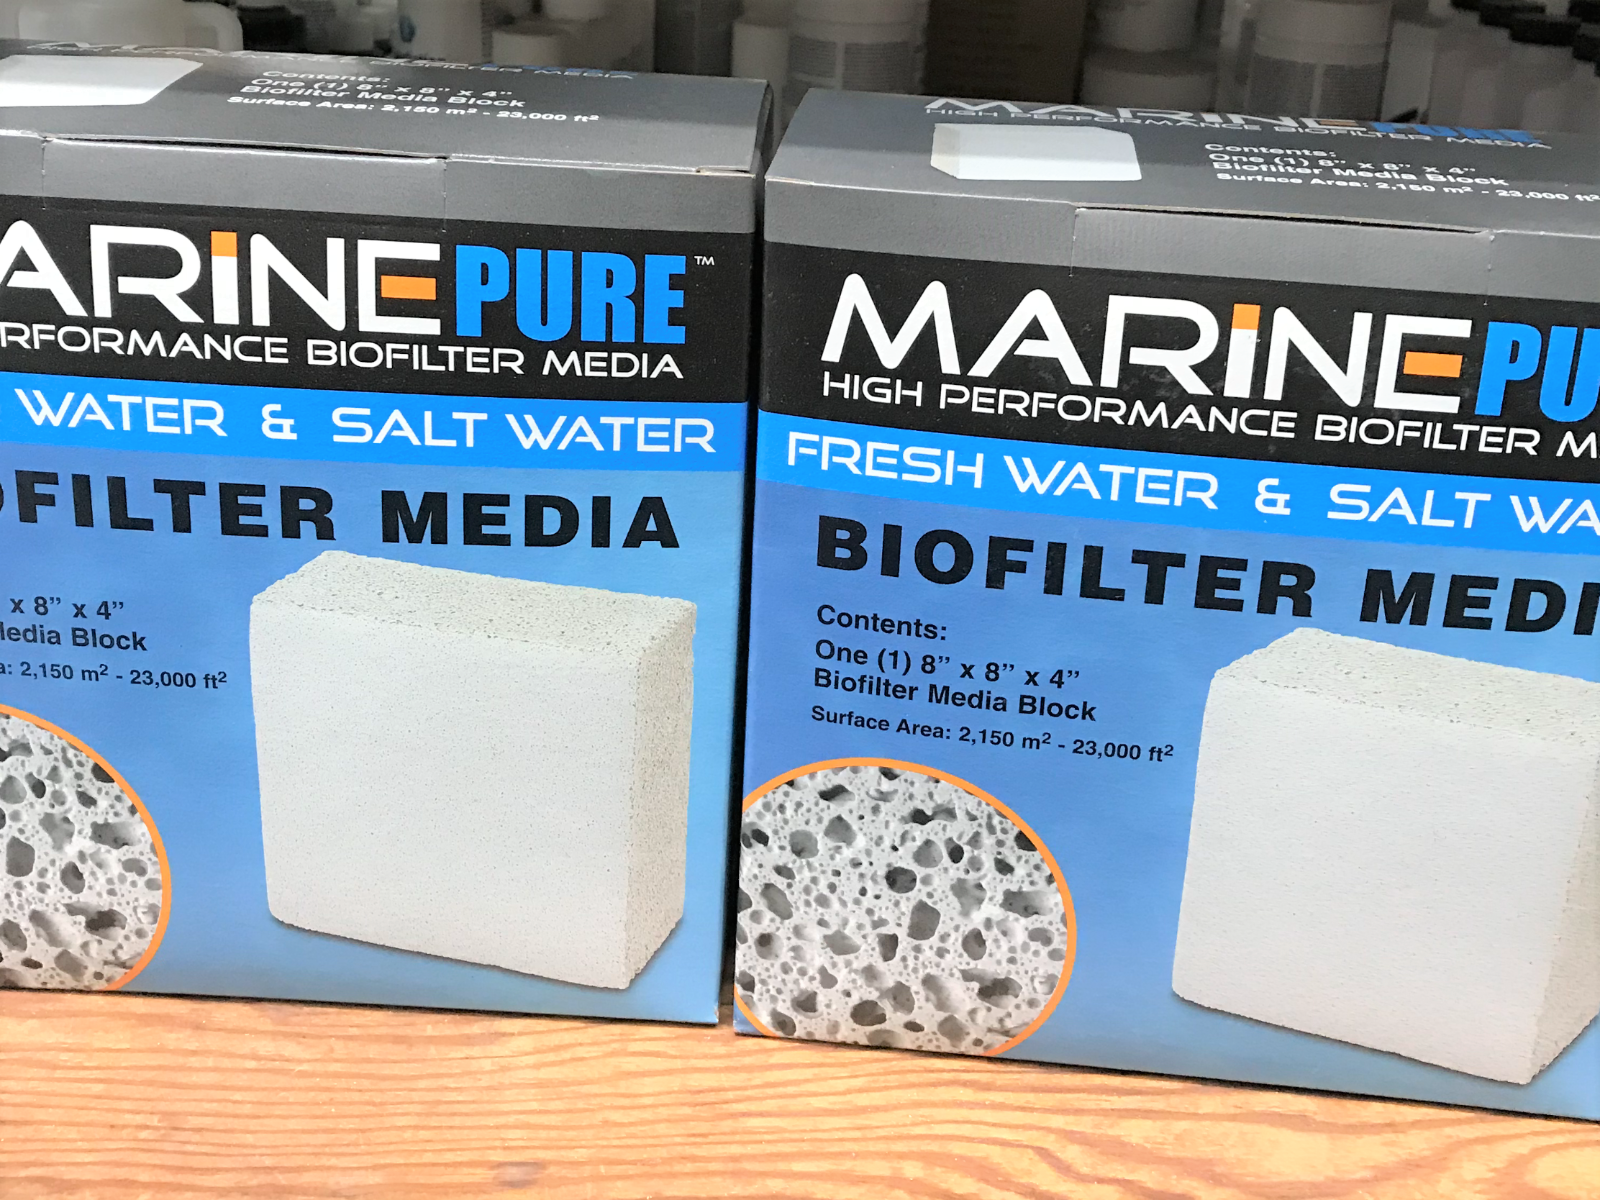 MARINEPURE BIOFILTER PLATE (8 X 8 X 4) - Lot of 2